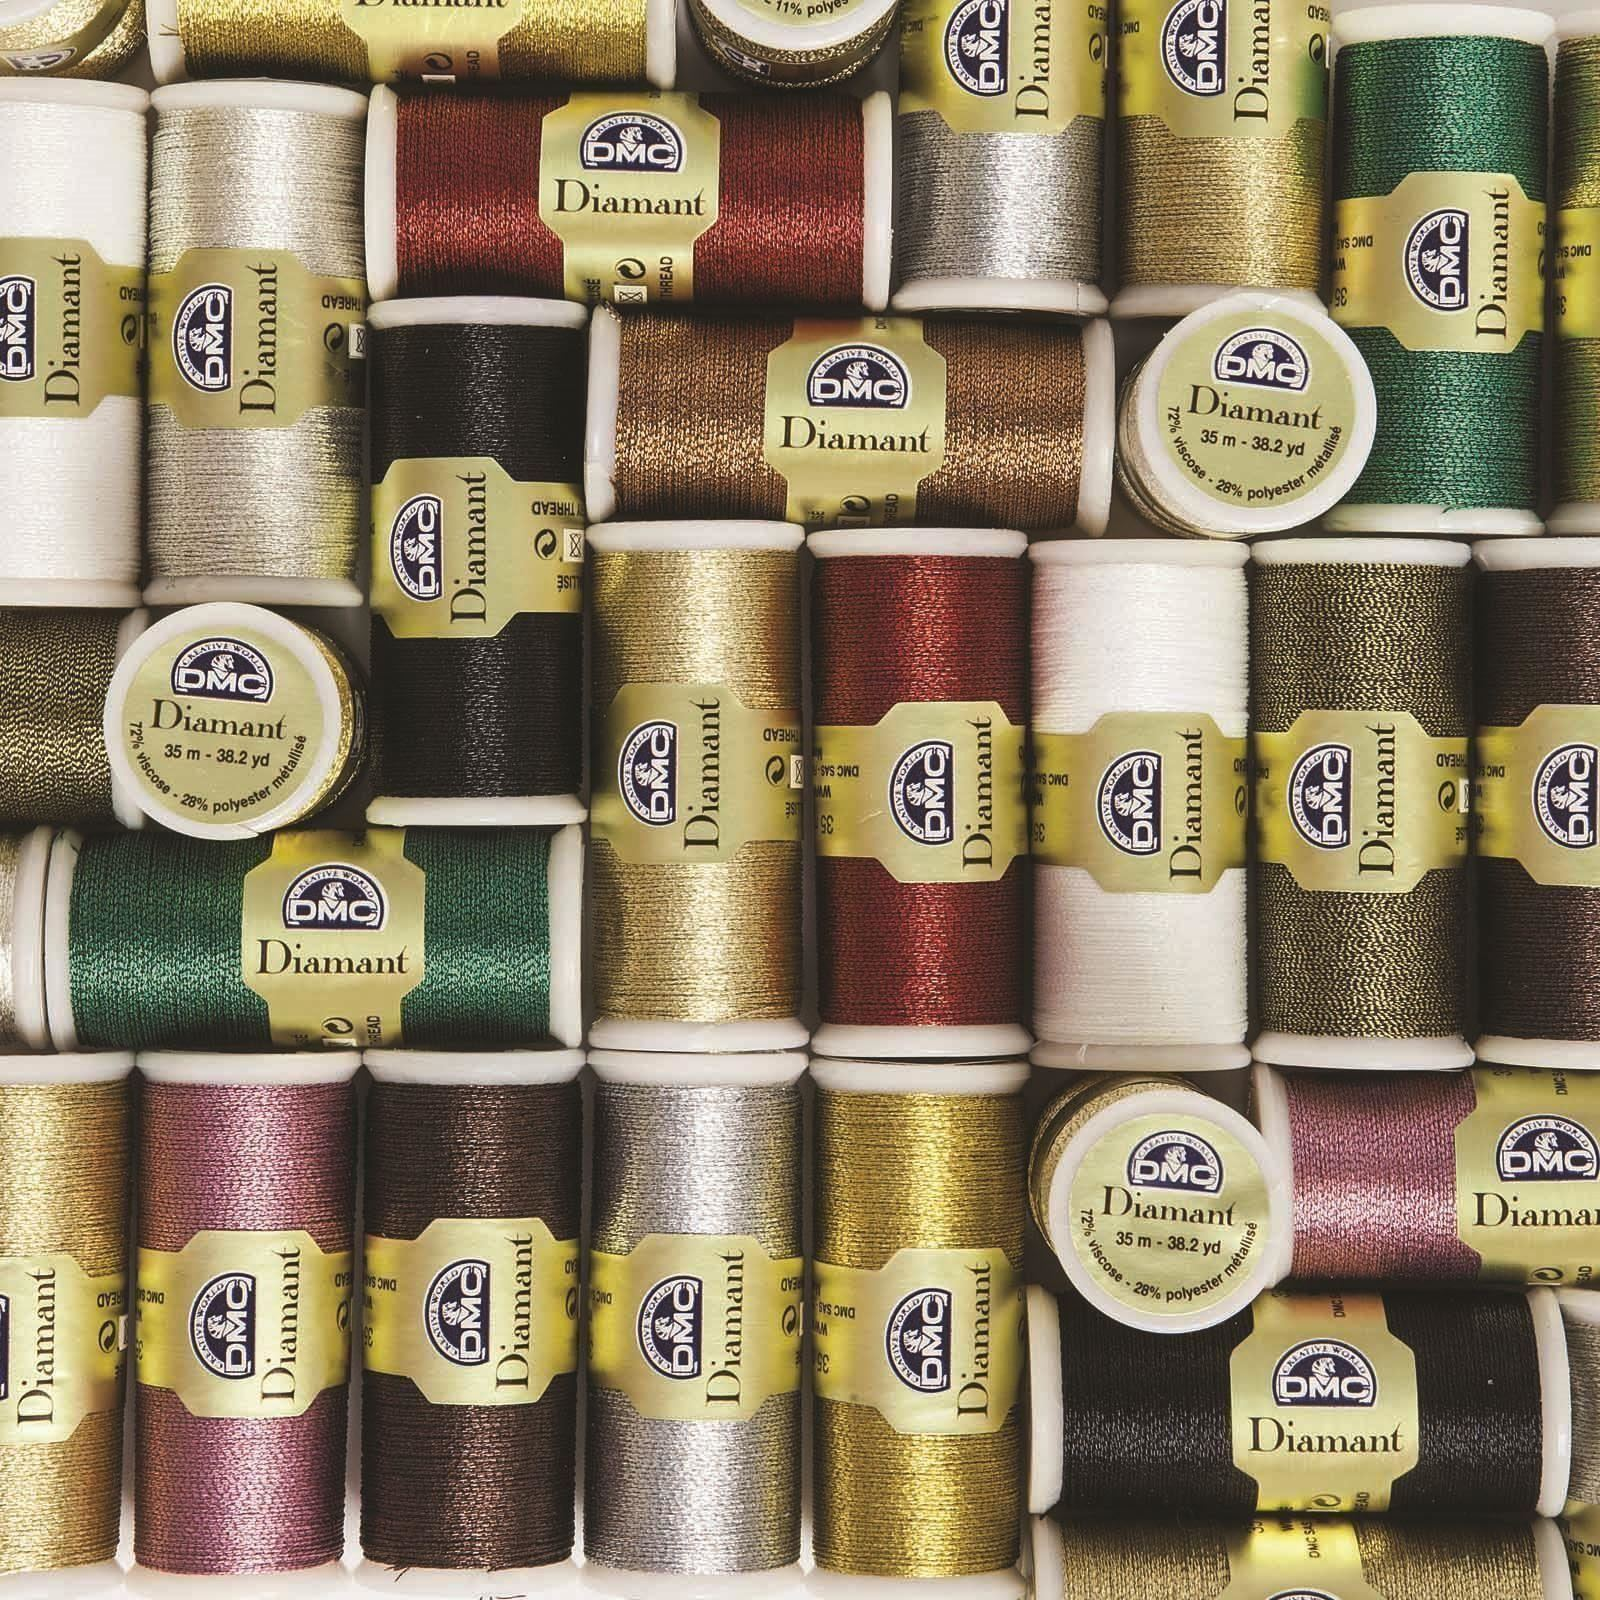 DMC-Diamant-Metallic-Embroidery-Thread-35m-Spool-Cross-Stitch thumbnail 47